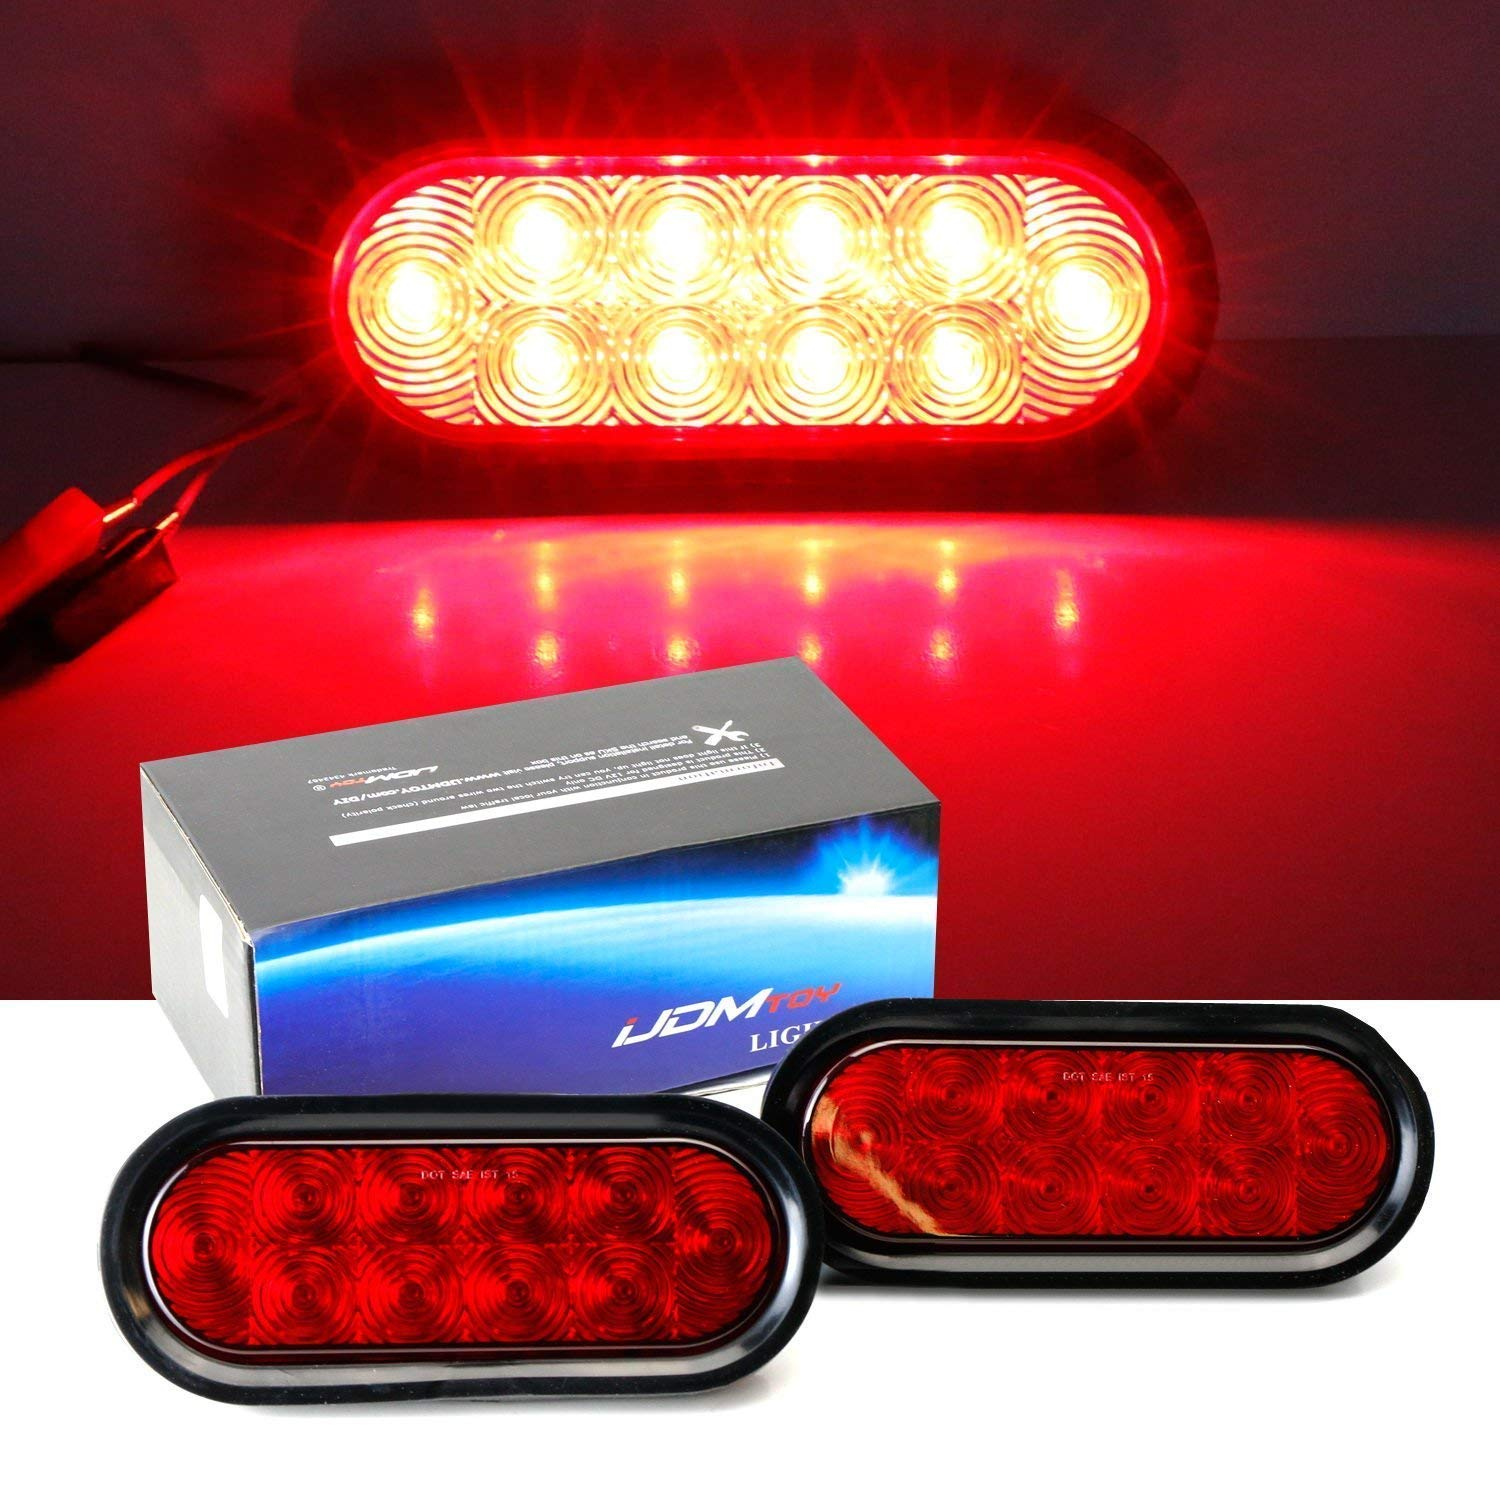 iJDMTOY Clear Lens White LED Reverse Fog Lights Kit Universal Fit For Truck Trailer RV etc, (2) 6.5' Surface Mount Oval Shape Xenon White Lamps w/Grommets & Pigtail Plugs (2) 6.5 Surface Mount Oval Shape Xenon White Lamps w/Grommets & Pigtail Plugs